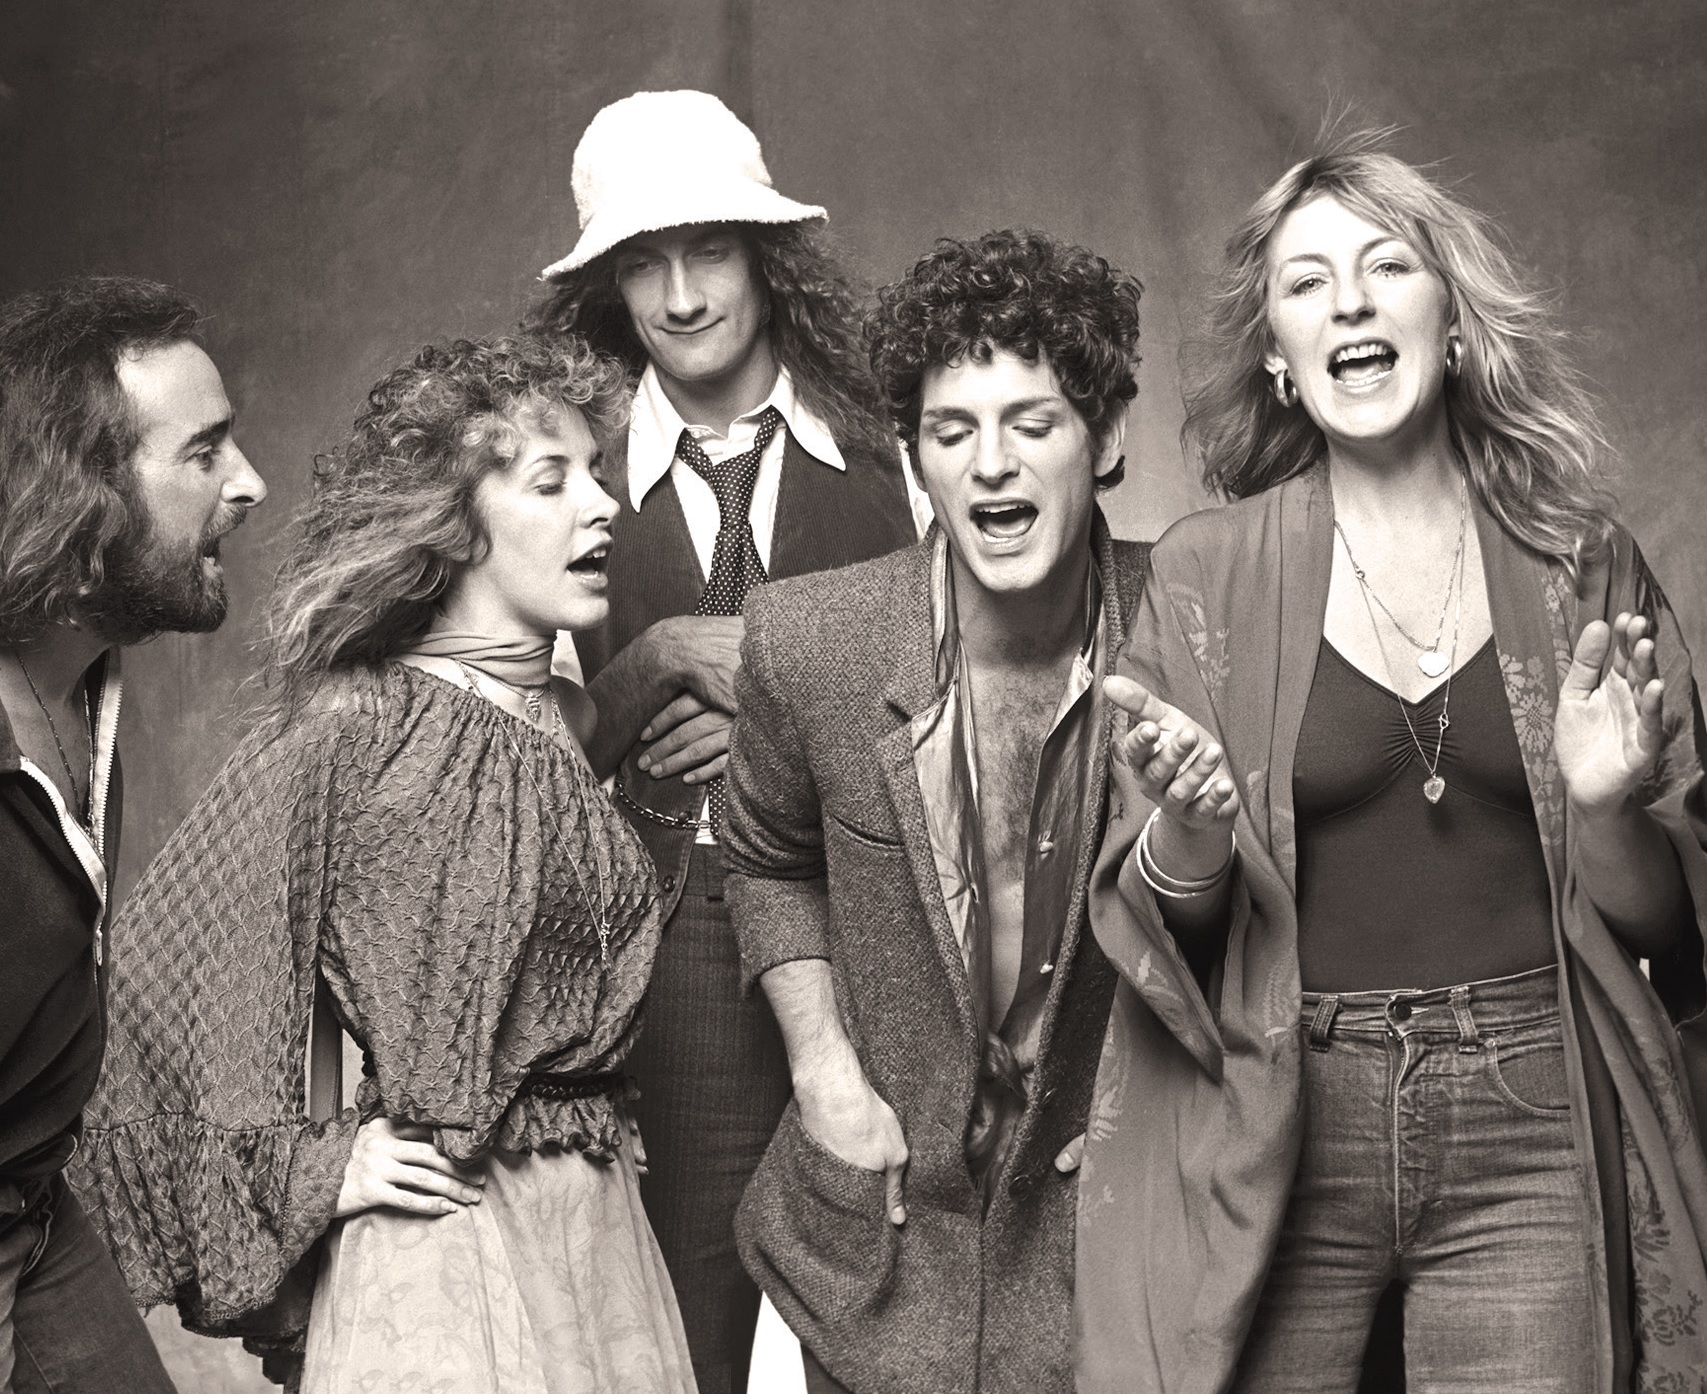 Fleetwood Mac Tusk era pic-NormanSeeff1